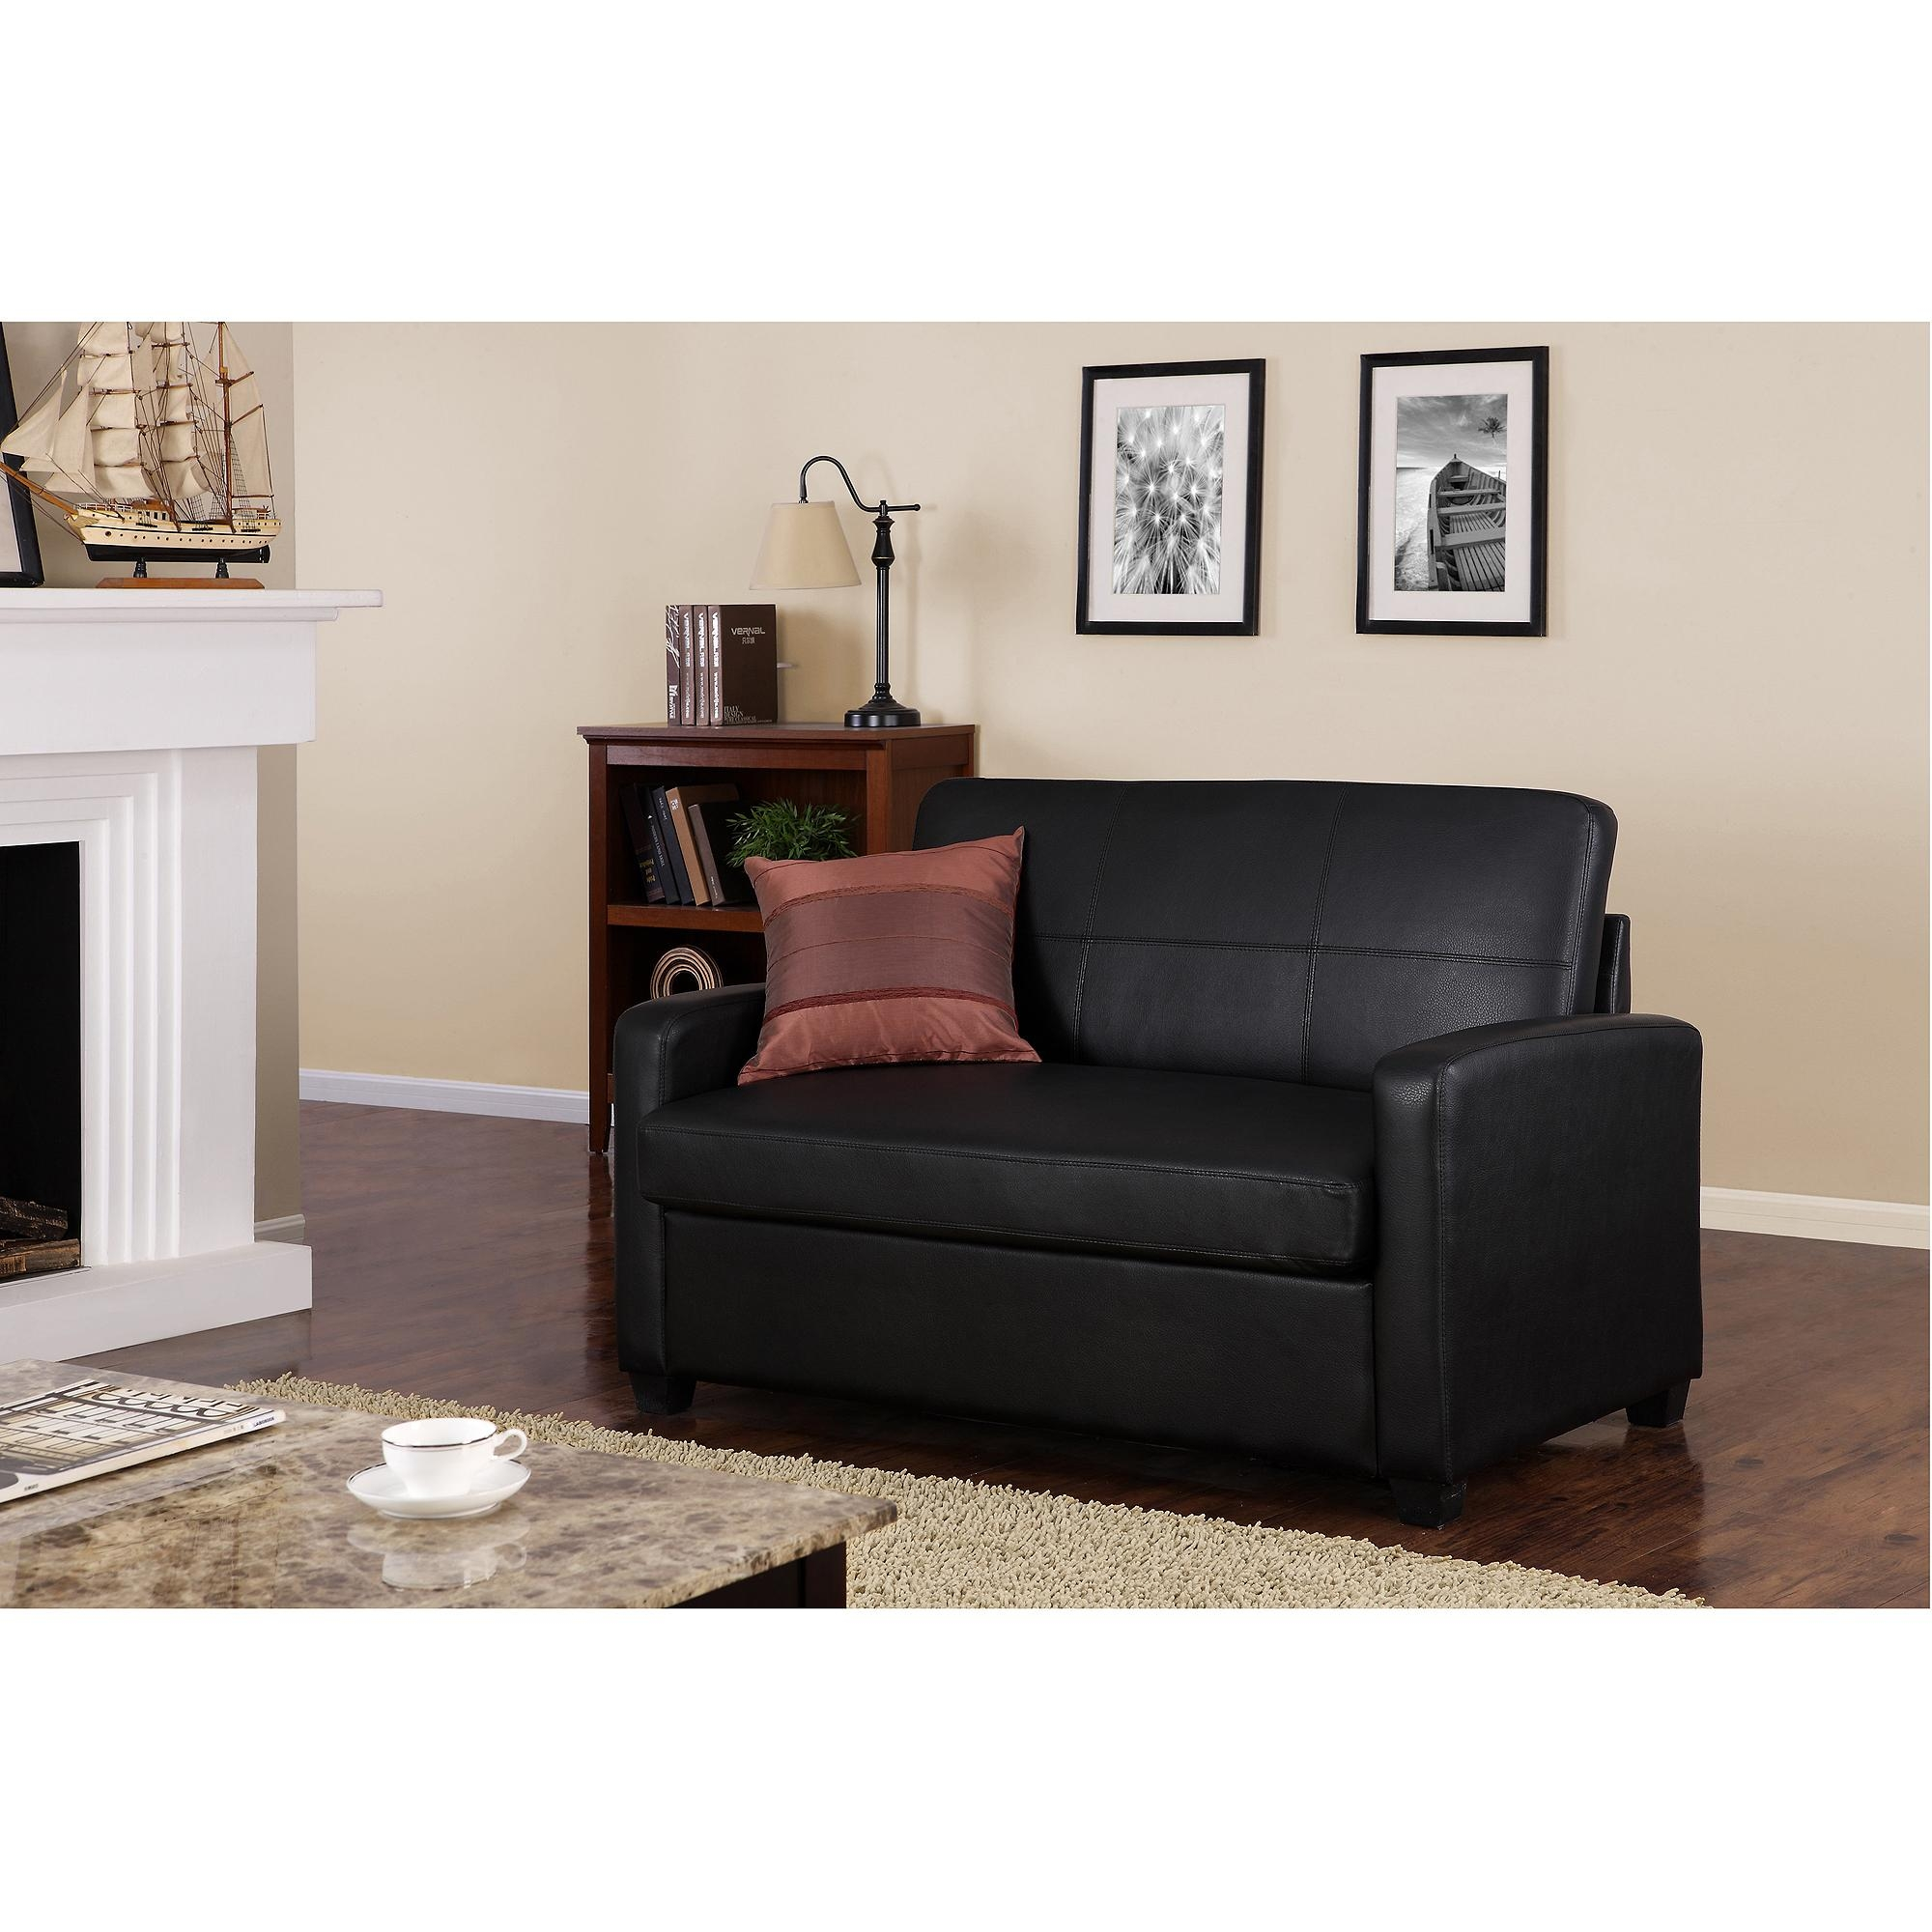 Sofas Center : Akali Sectional Sleeper Sofa Tufted Chaise Lounge Pertaining To Faux Leather Sleeper Sofas (Image 12 of 20)